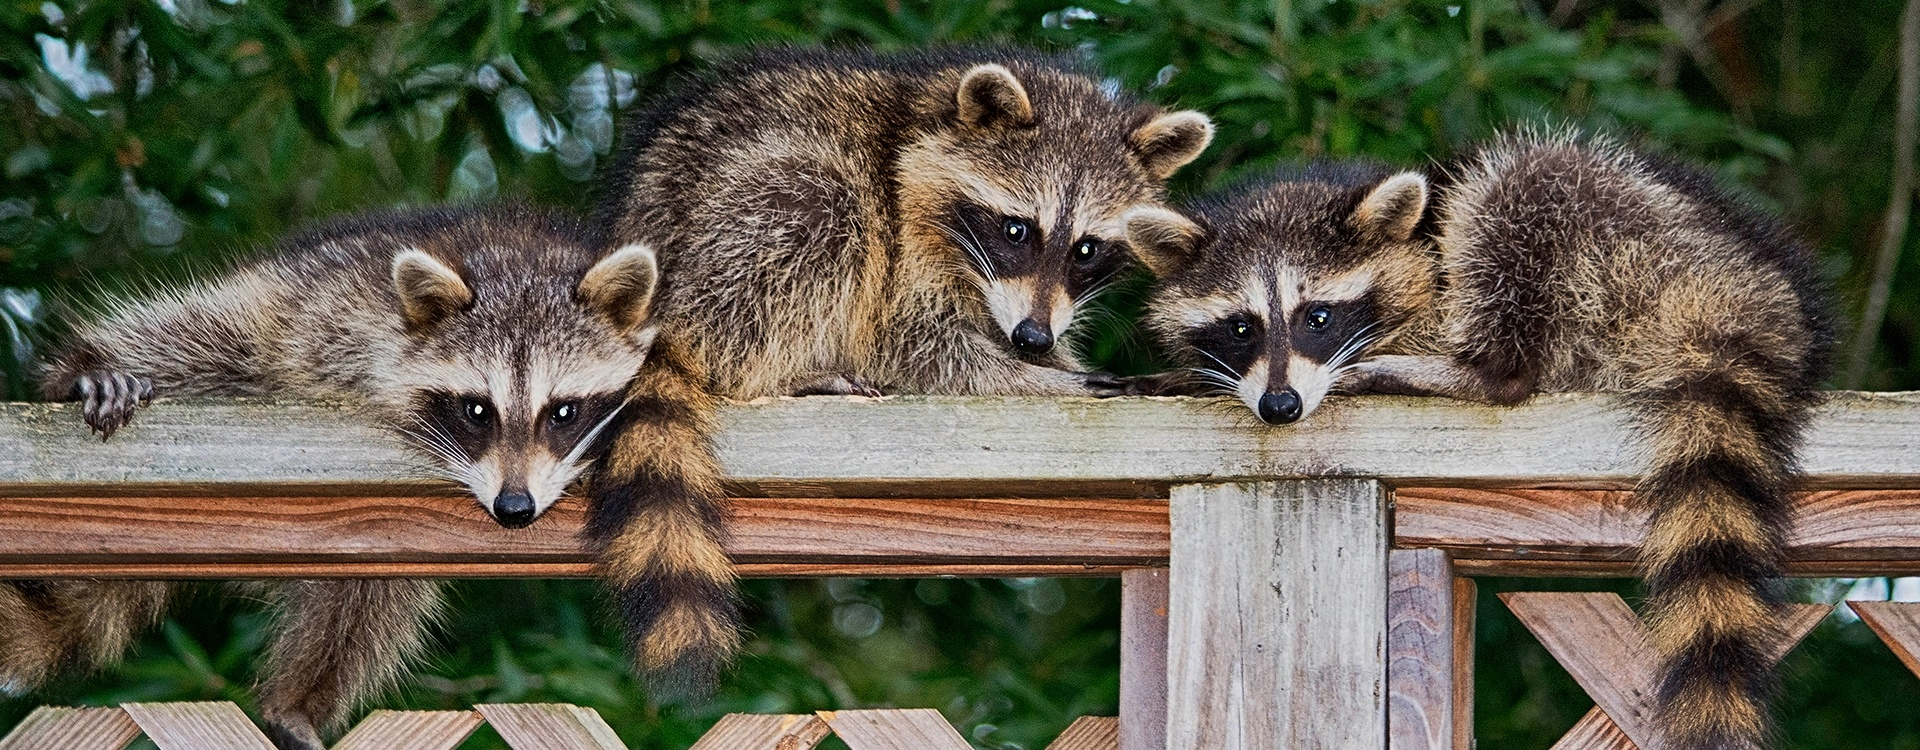 raccoons climbing a wooden fence